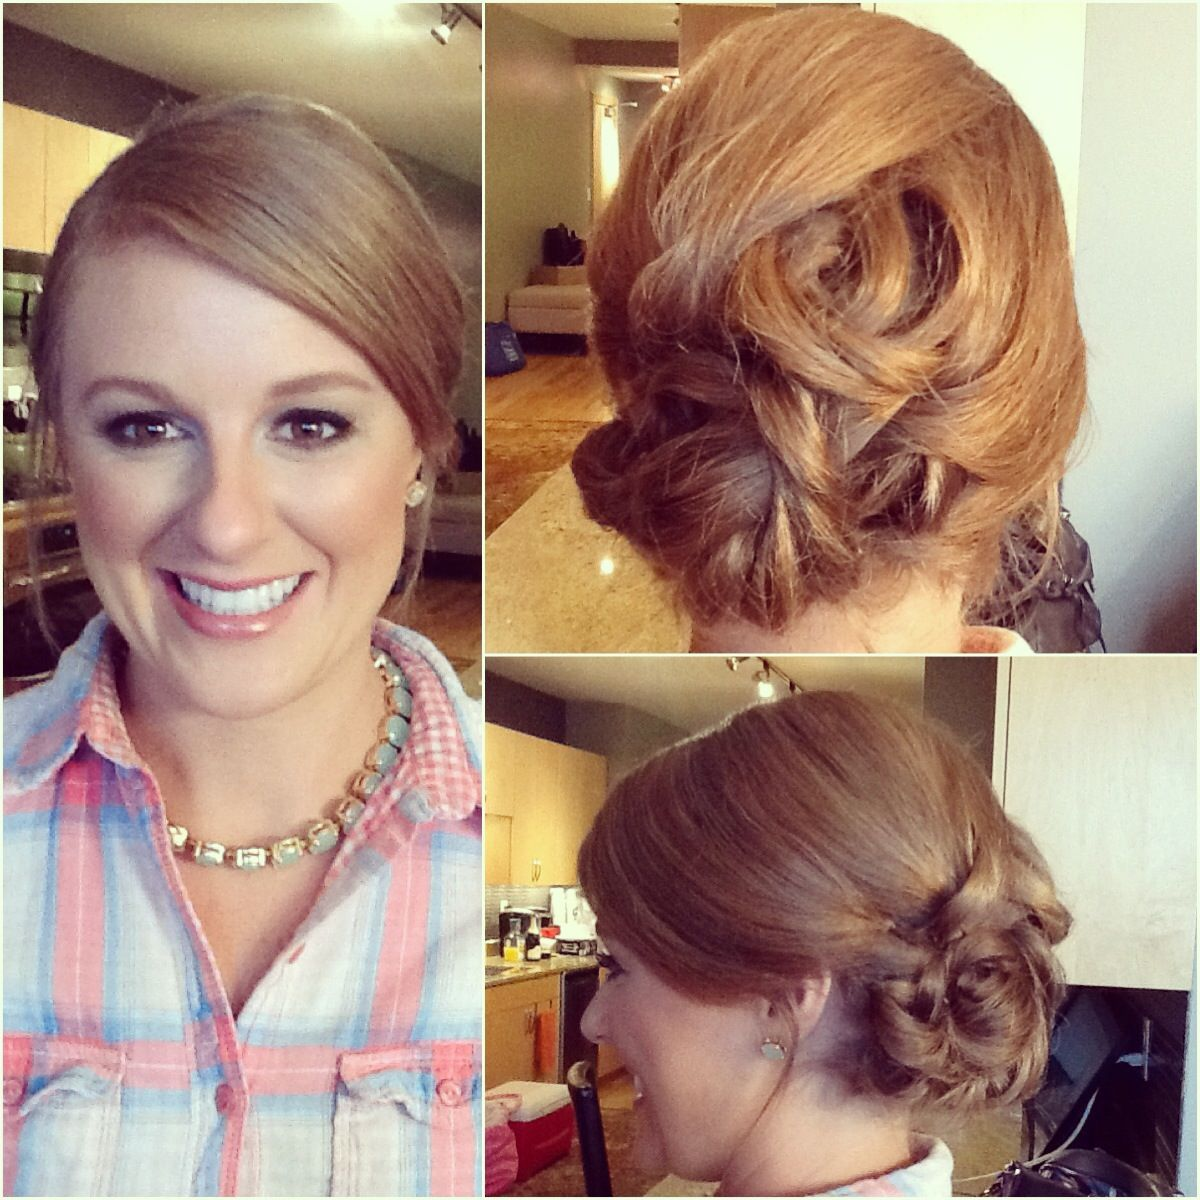 Hair and makeup by taj salon & spa near Minneapolis